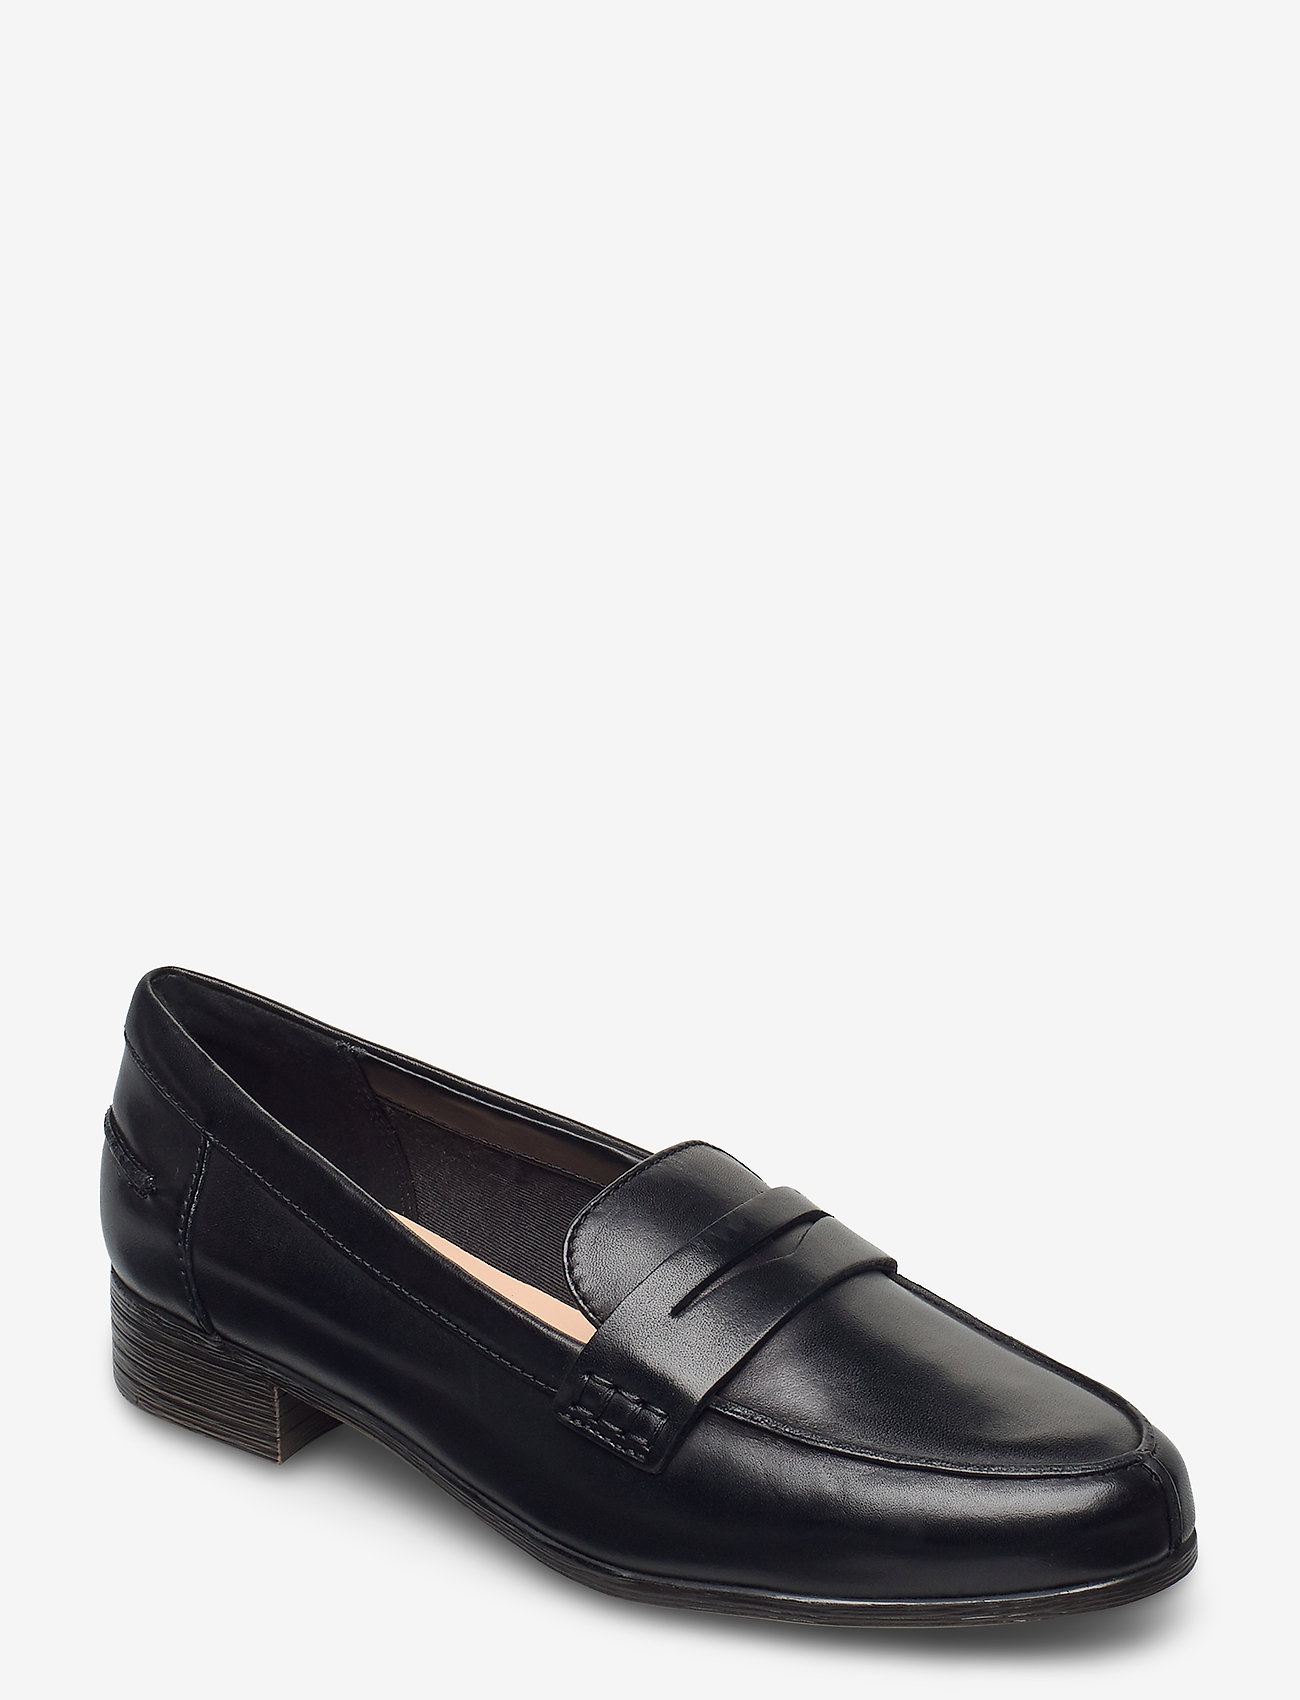 Clarks - Hamble Loafer - mokasiner - black leather - 0